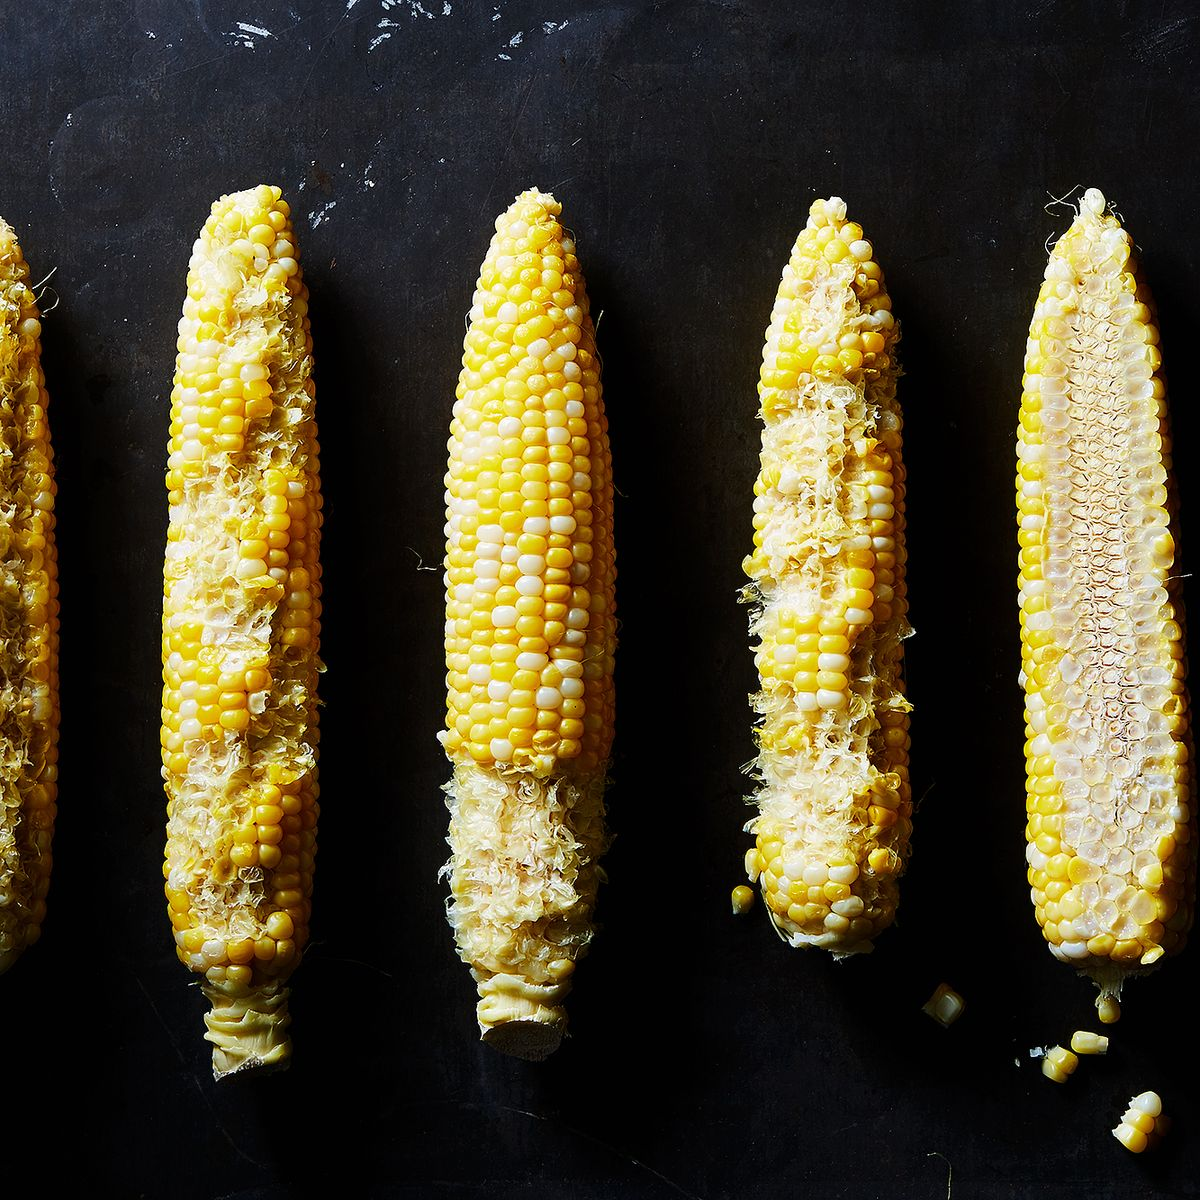 Is There A Right Way To Eat Corn On The Cob